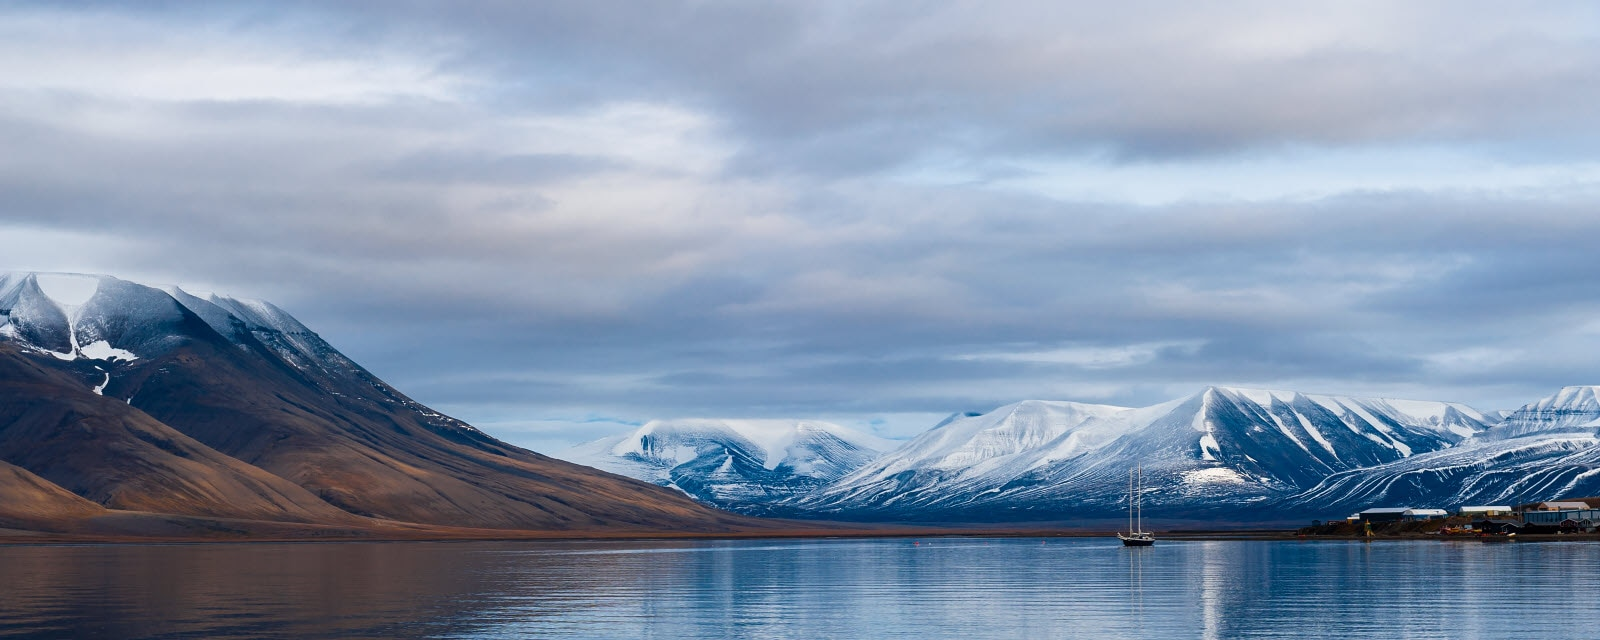 Surrounded by the beautiful nature in Svalbard